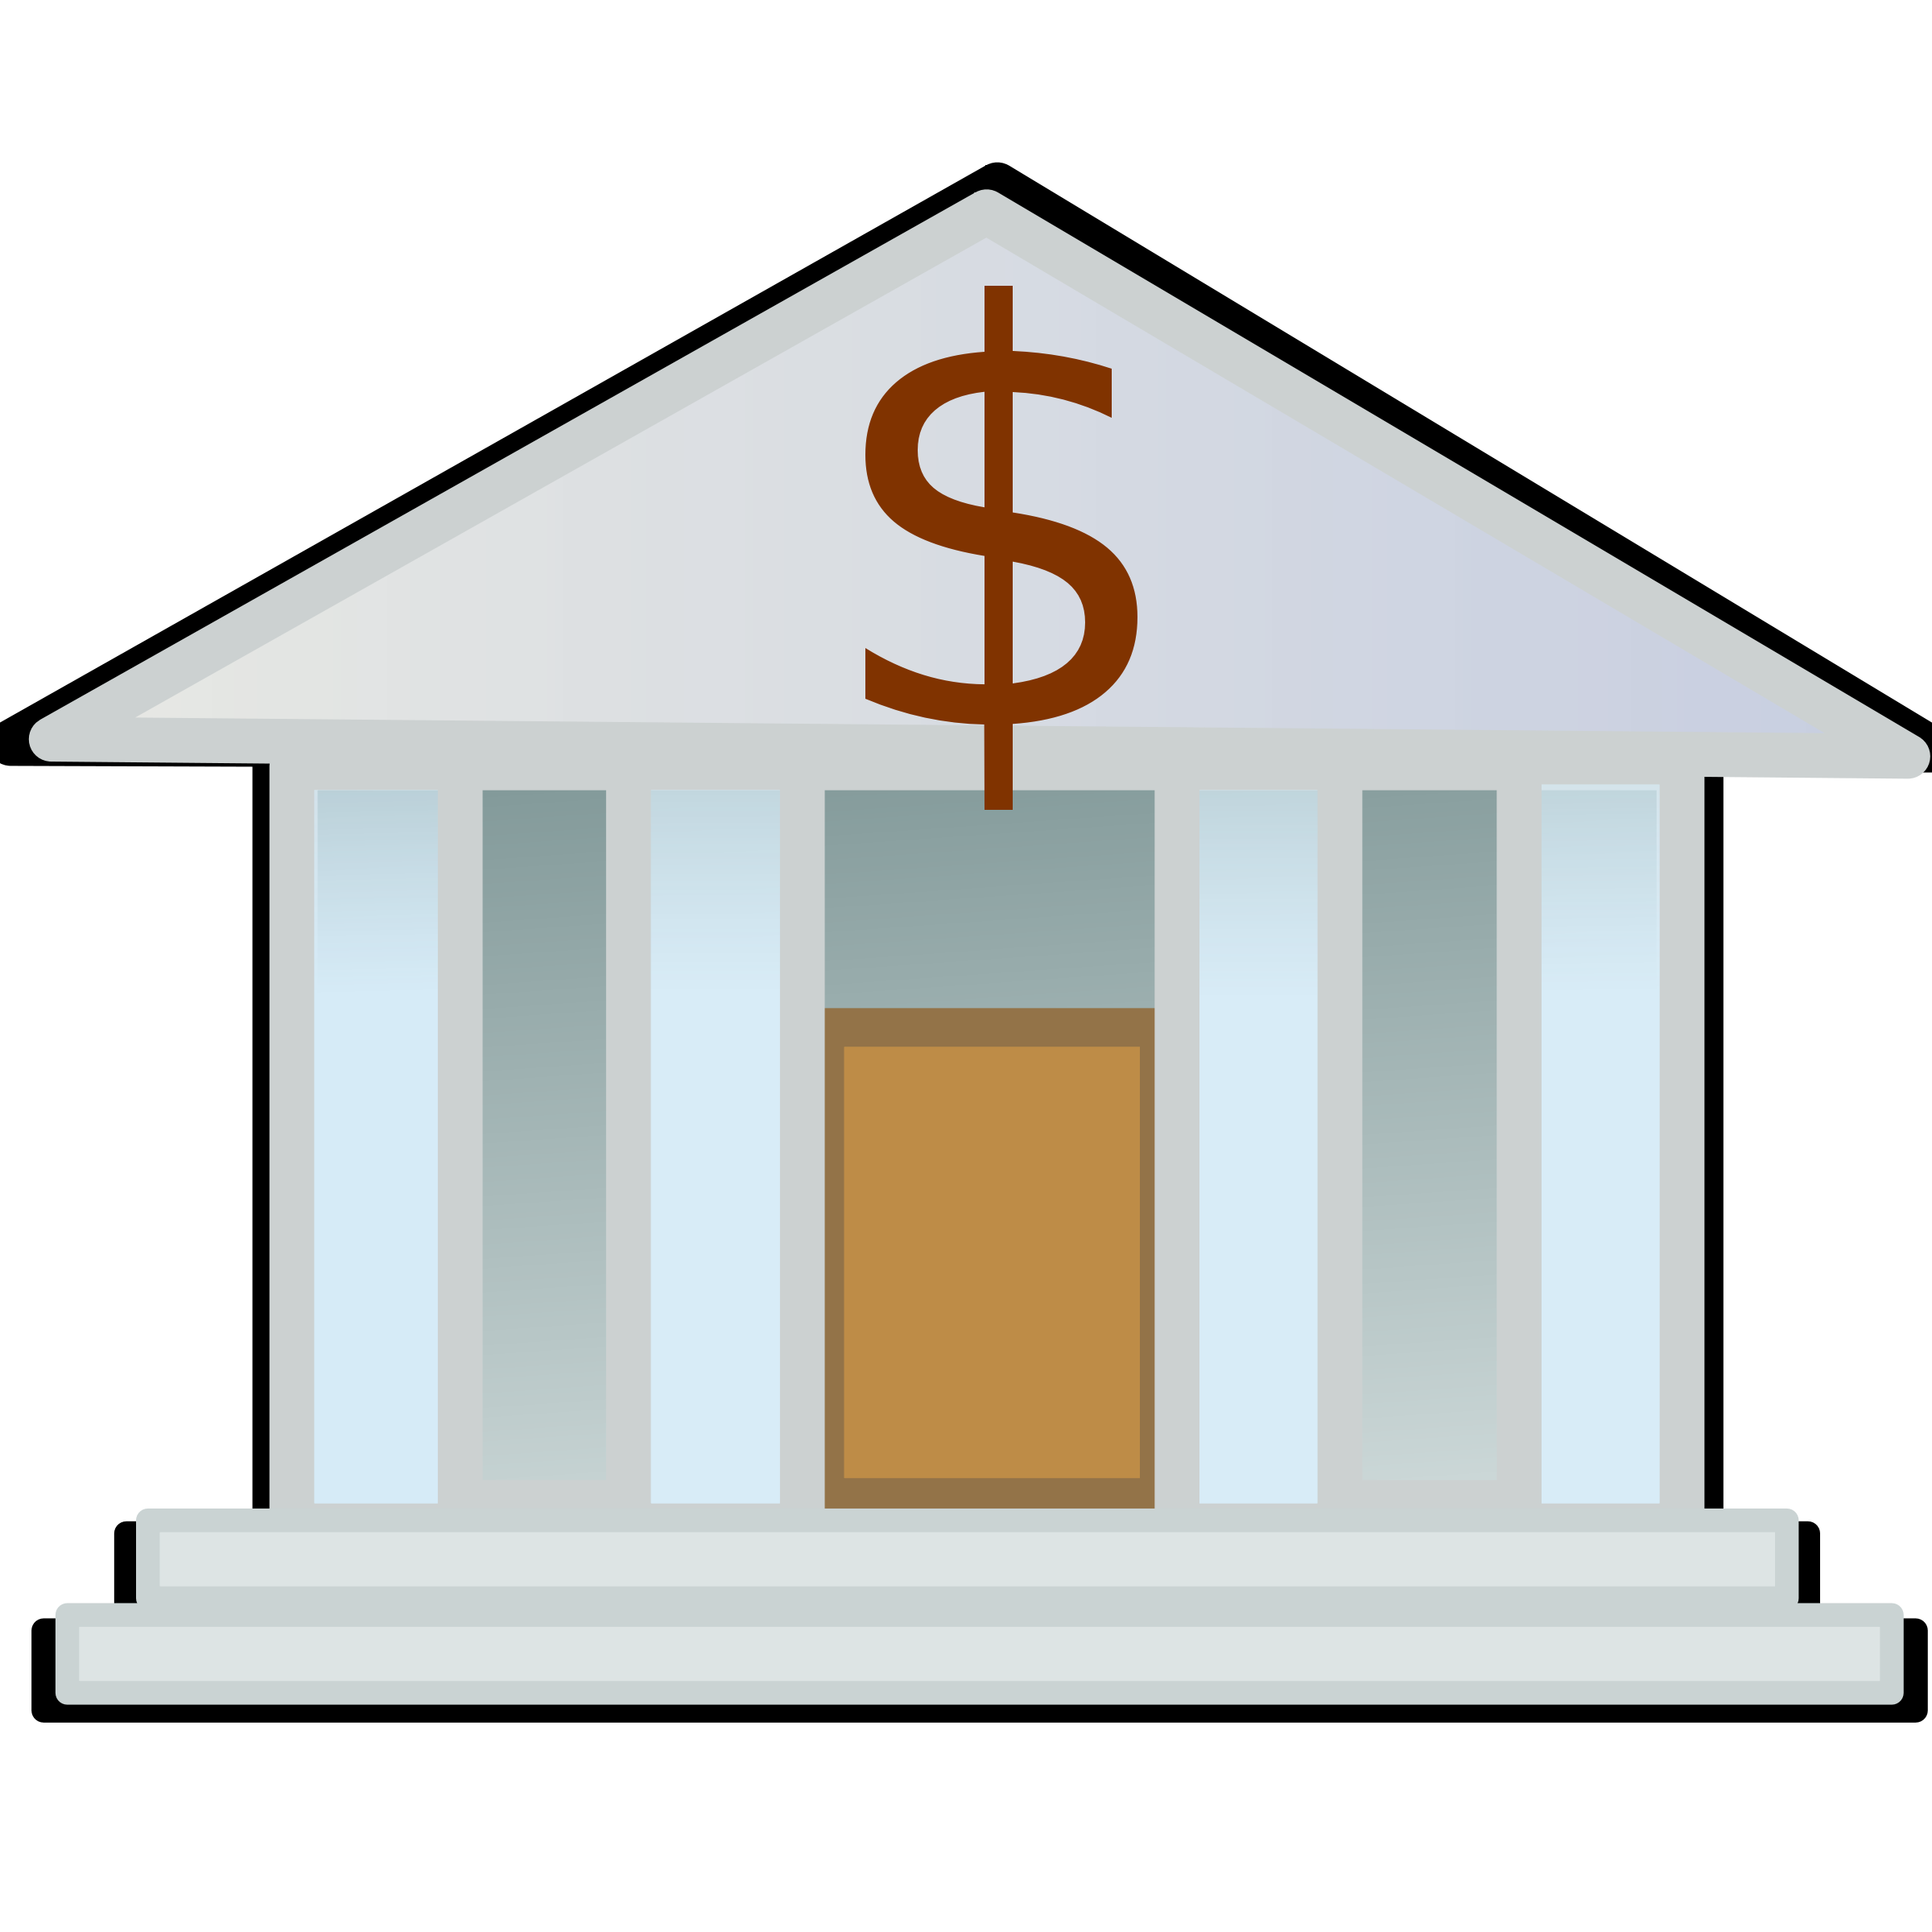 Free Bank Cliparts, Download Free Clip Art, Free Clip Art on.